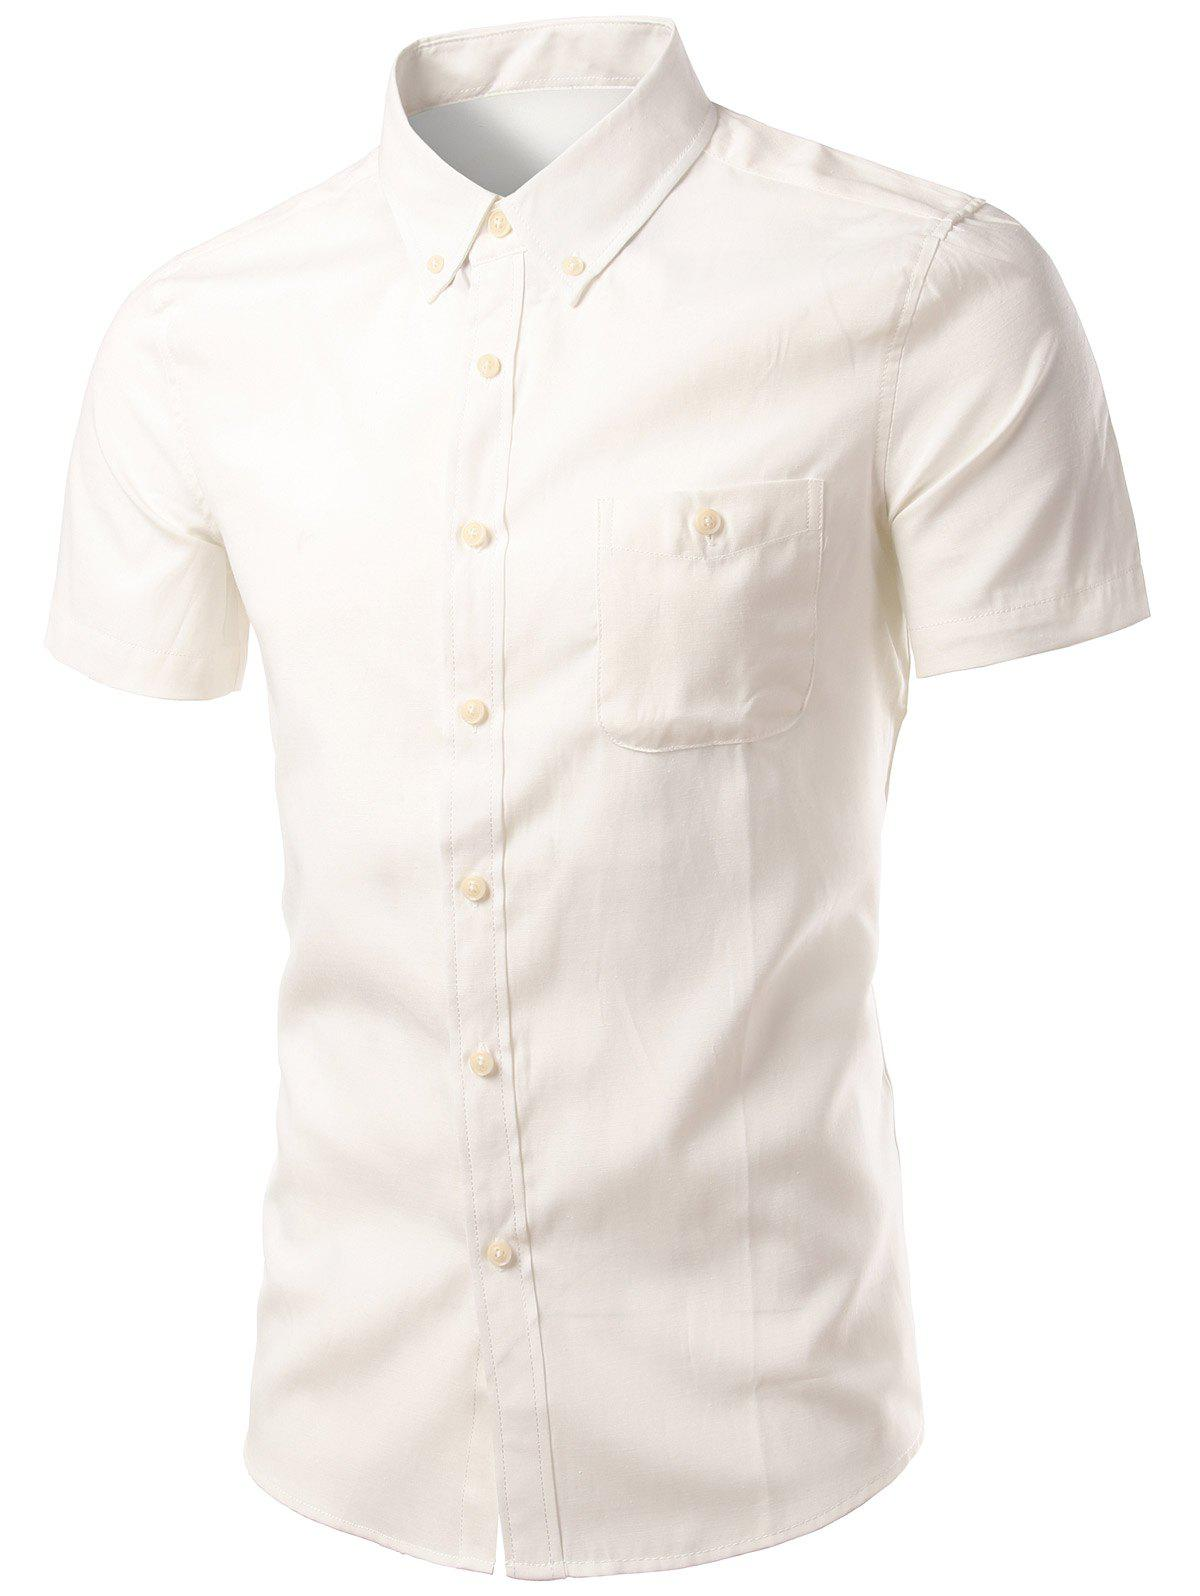 Plus Size Button-Down Short Sleeve Slimming Men's Shirt - WHITE 2XL